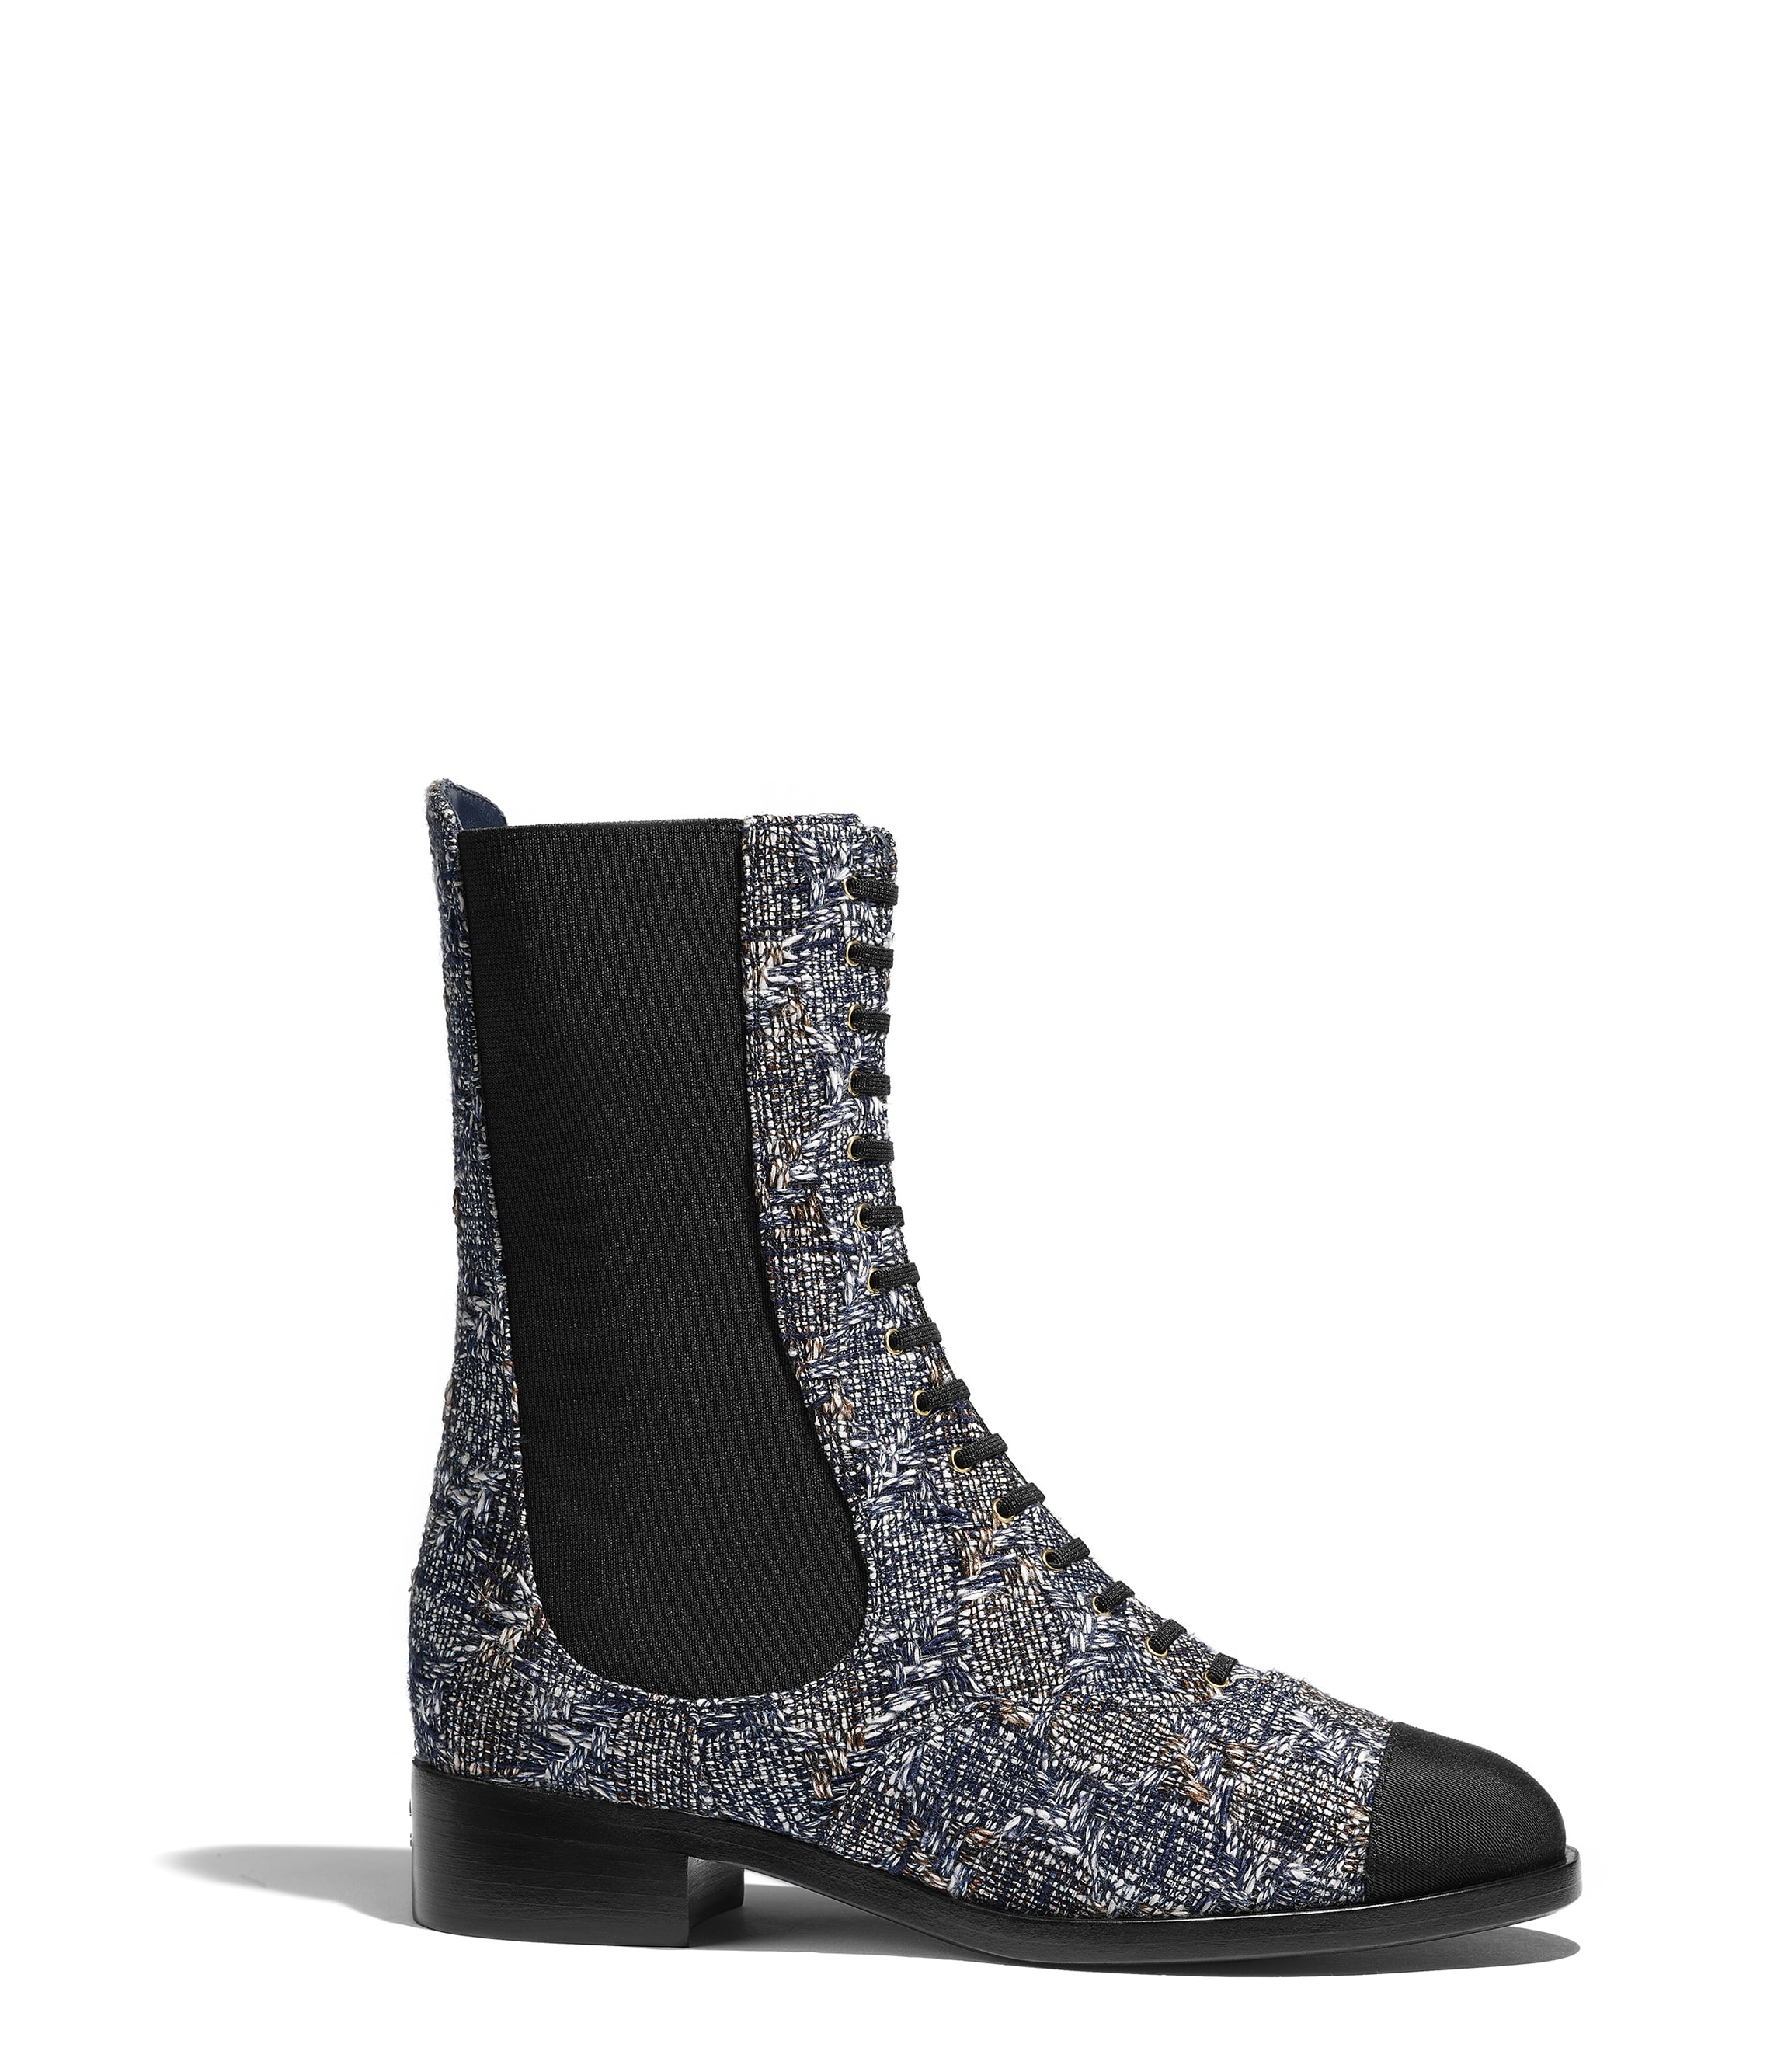 Bottines - Chaussures - CHANEL 3b426d51f2a